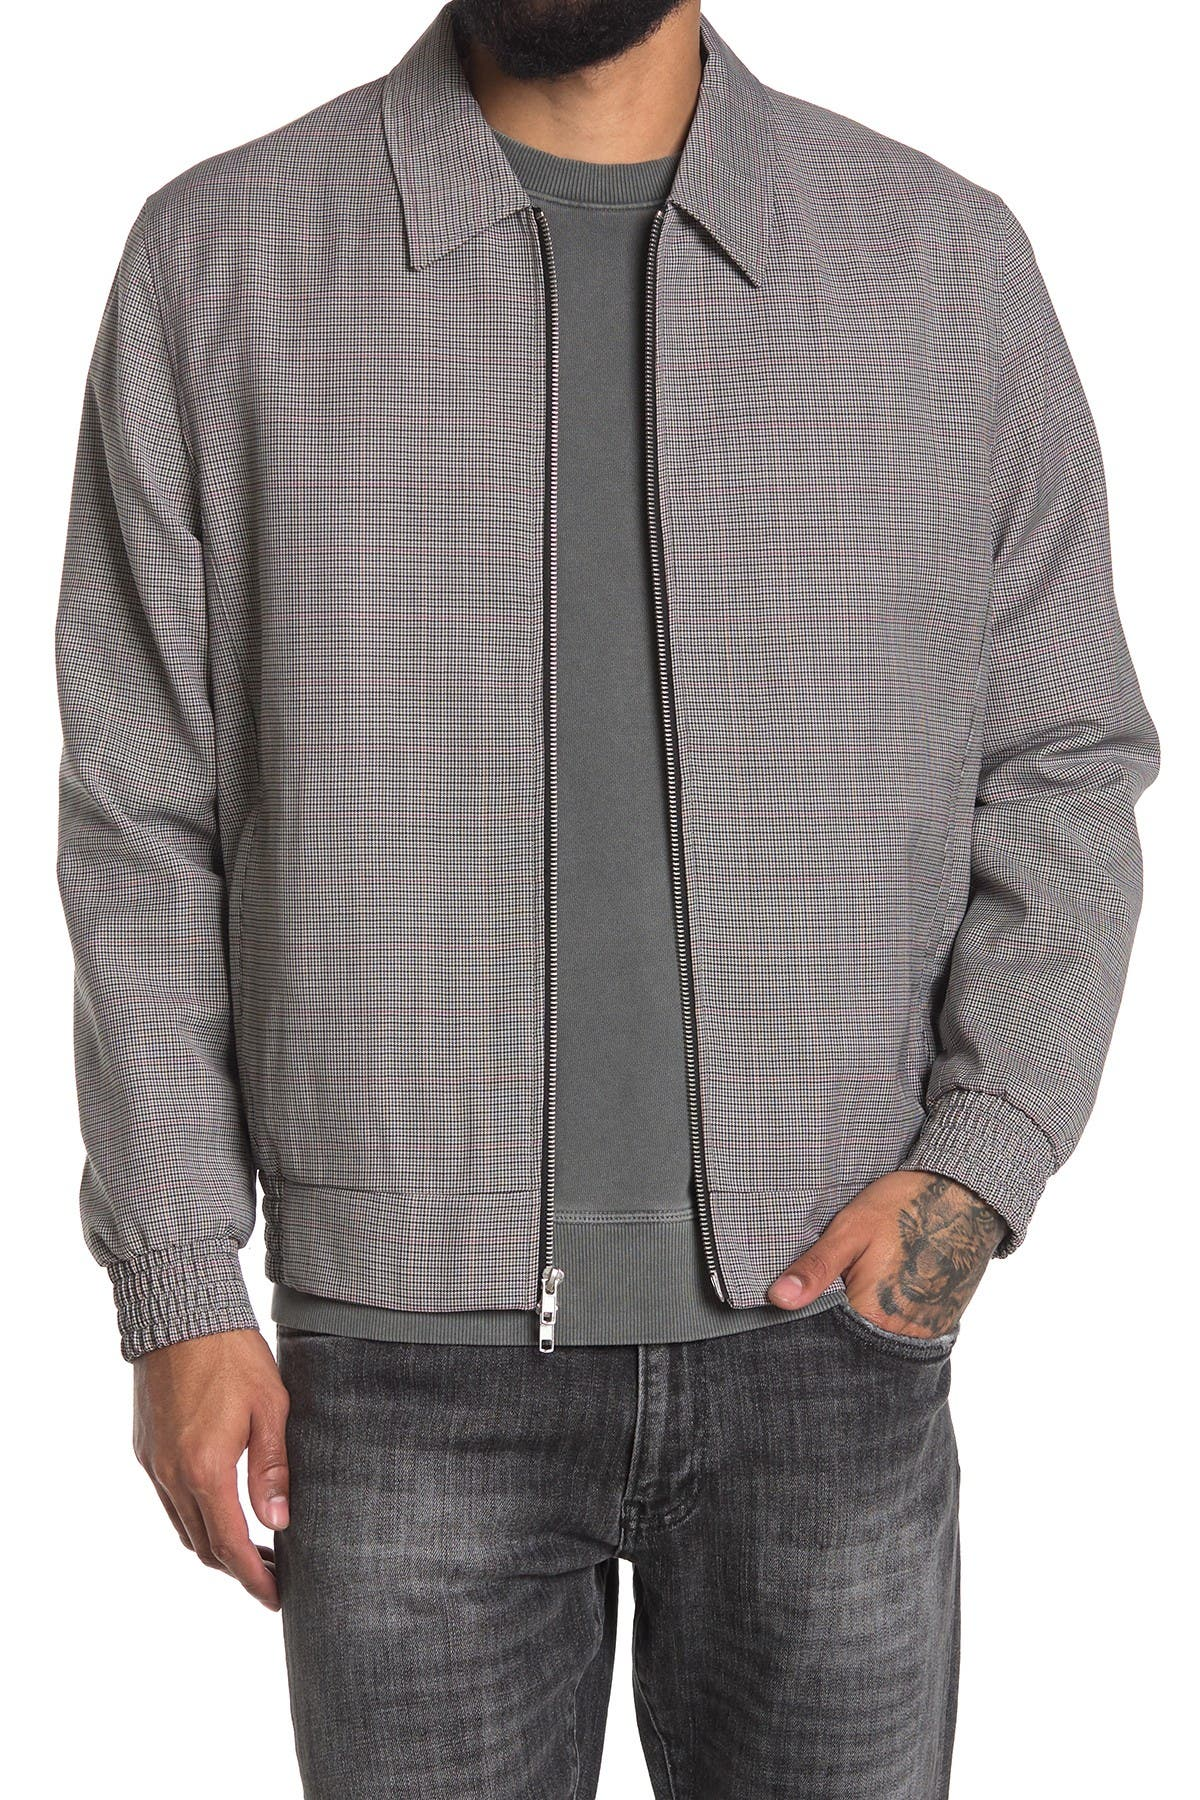 Image of OVADIA AND SONS McGregor Collared Wool Jacket